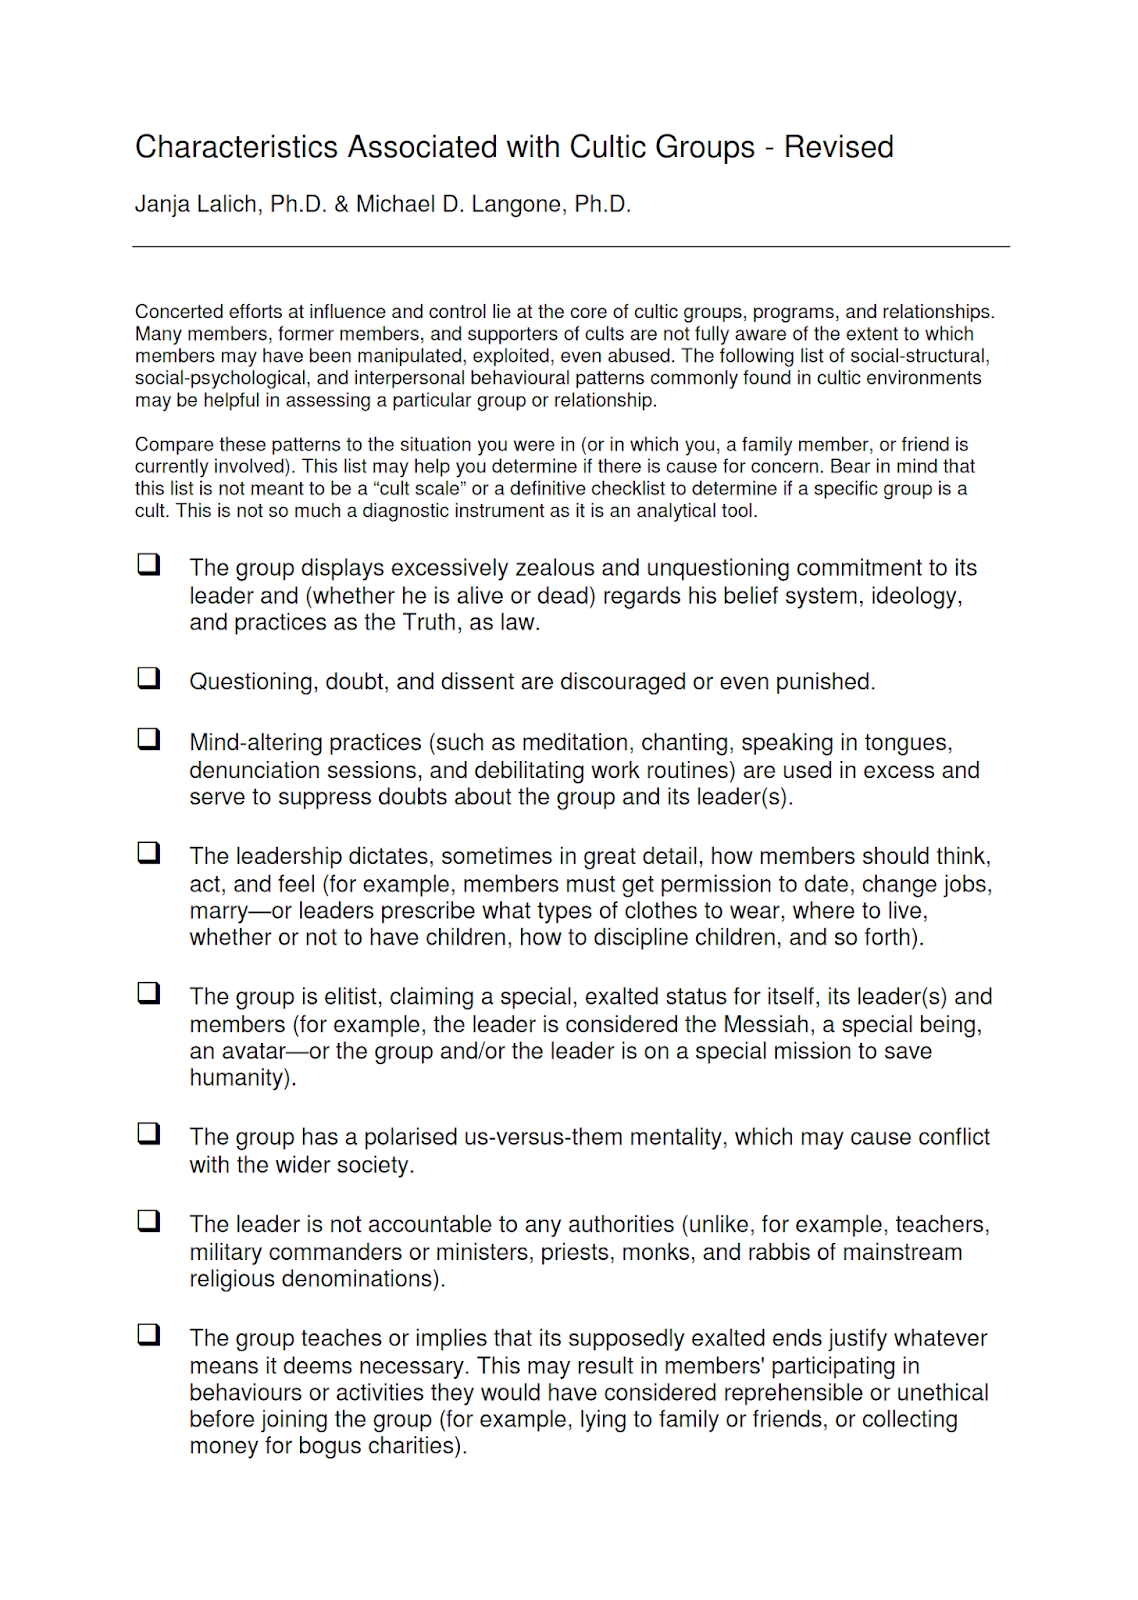 Cult Characteristics of Cultic Groups checklist by Lalich and Langone - page 1